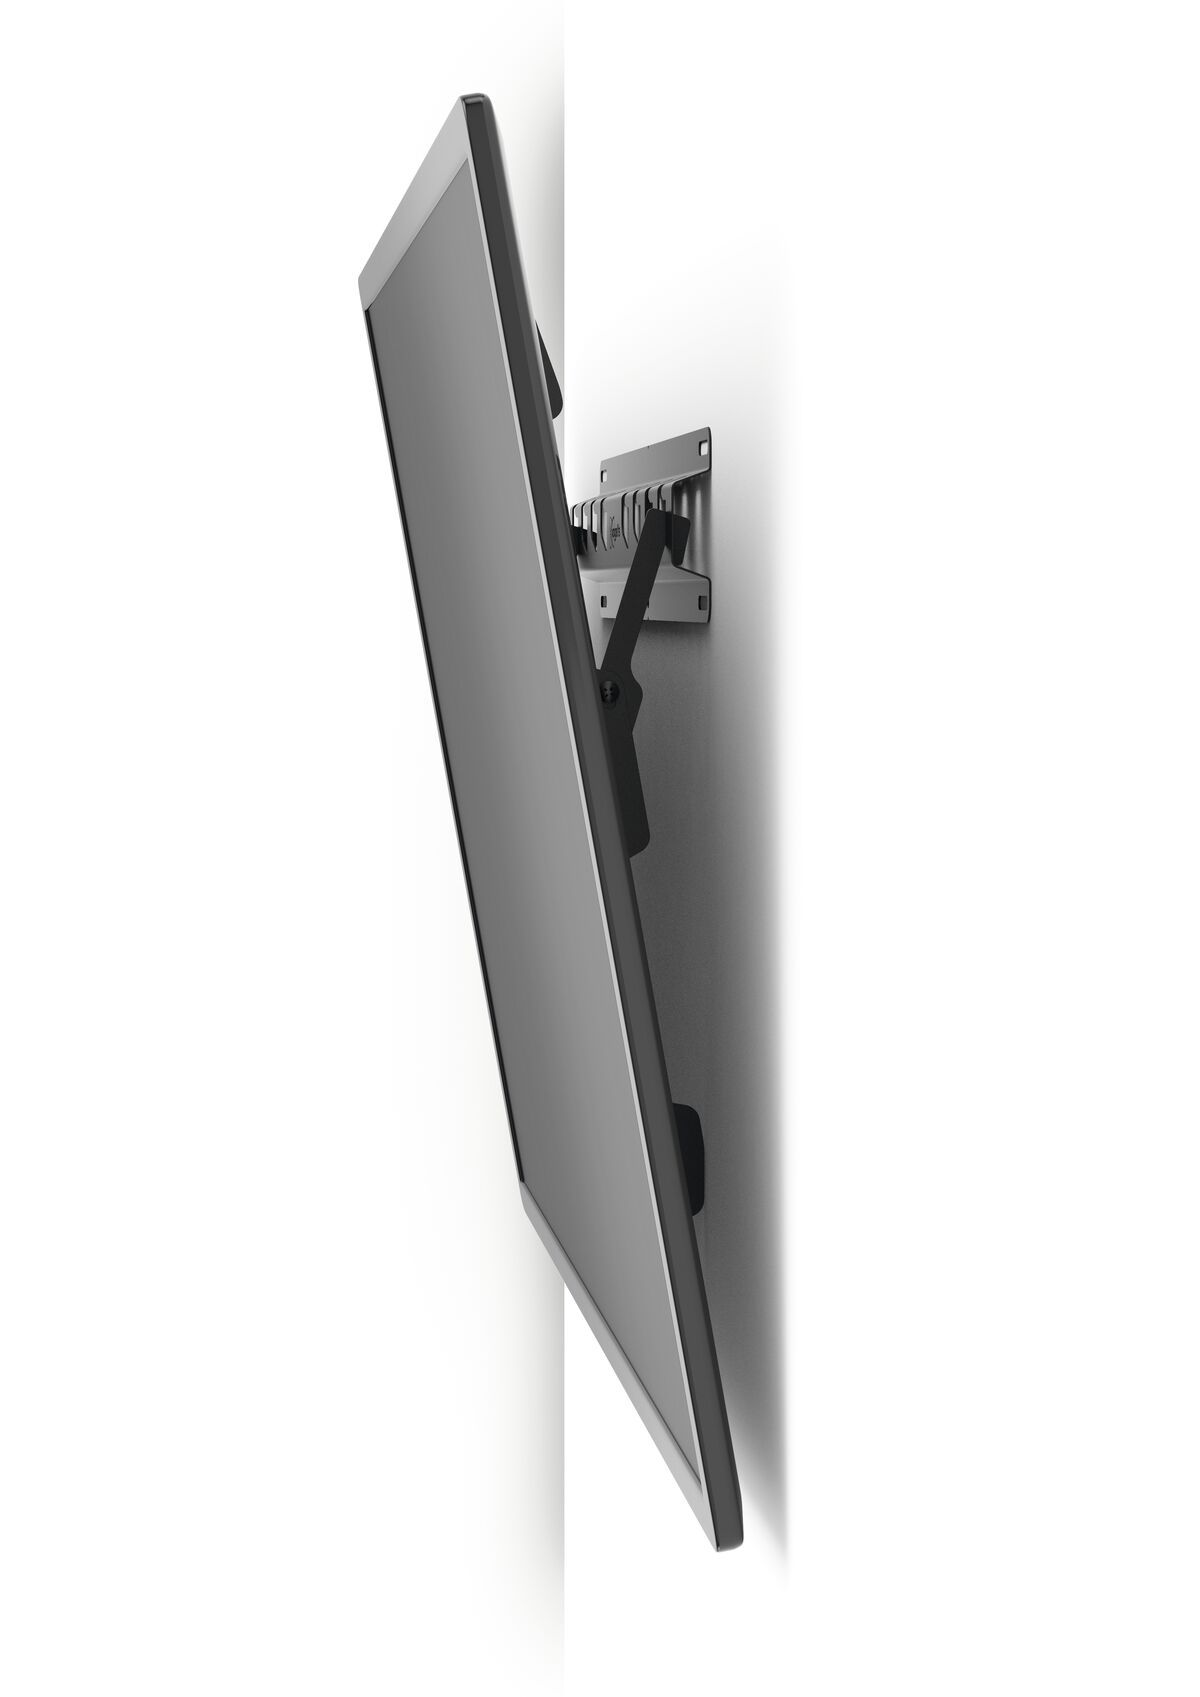 Vogel's MA 3010 (A1) Tilting TV Wall Mount - Suitable for 32 up to 55 inch TVs up to 40 kg - Tilt up to 10° - White wall